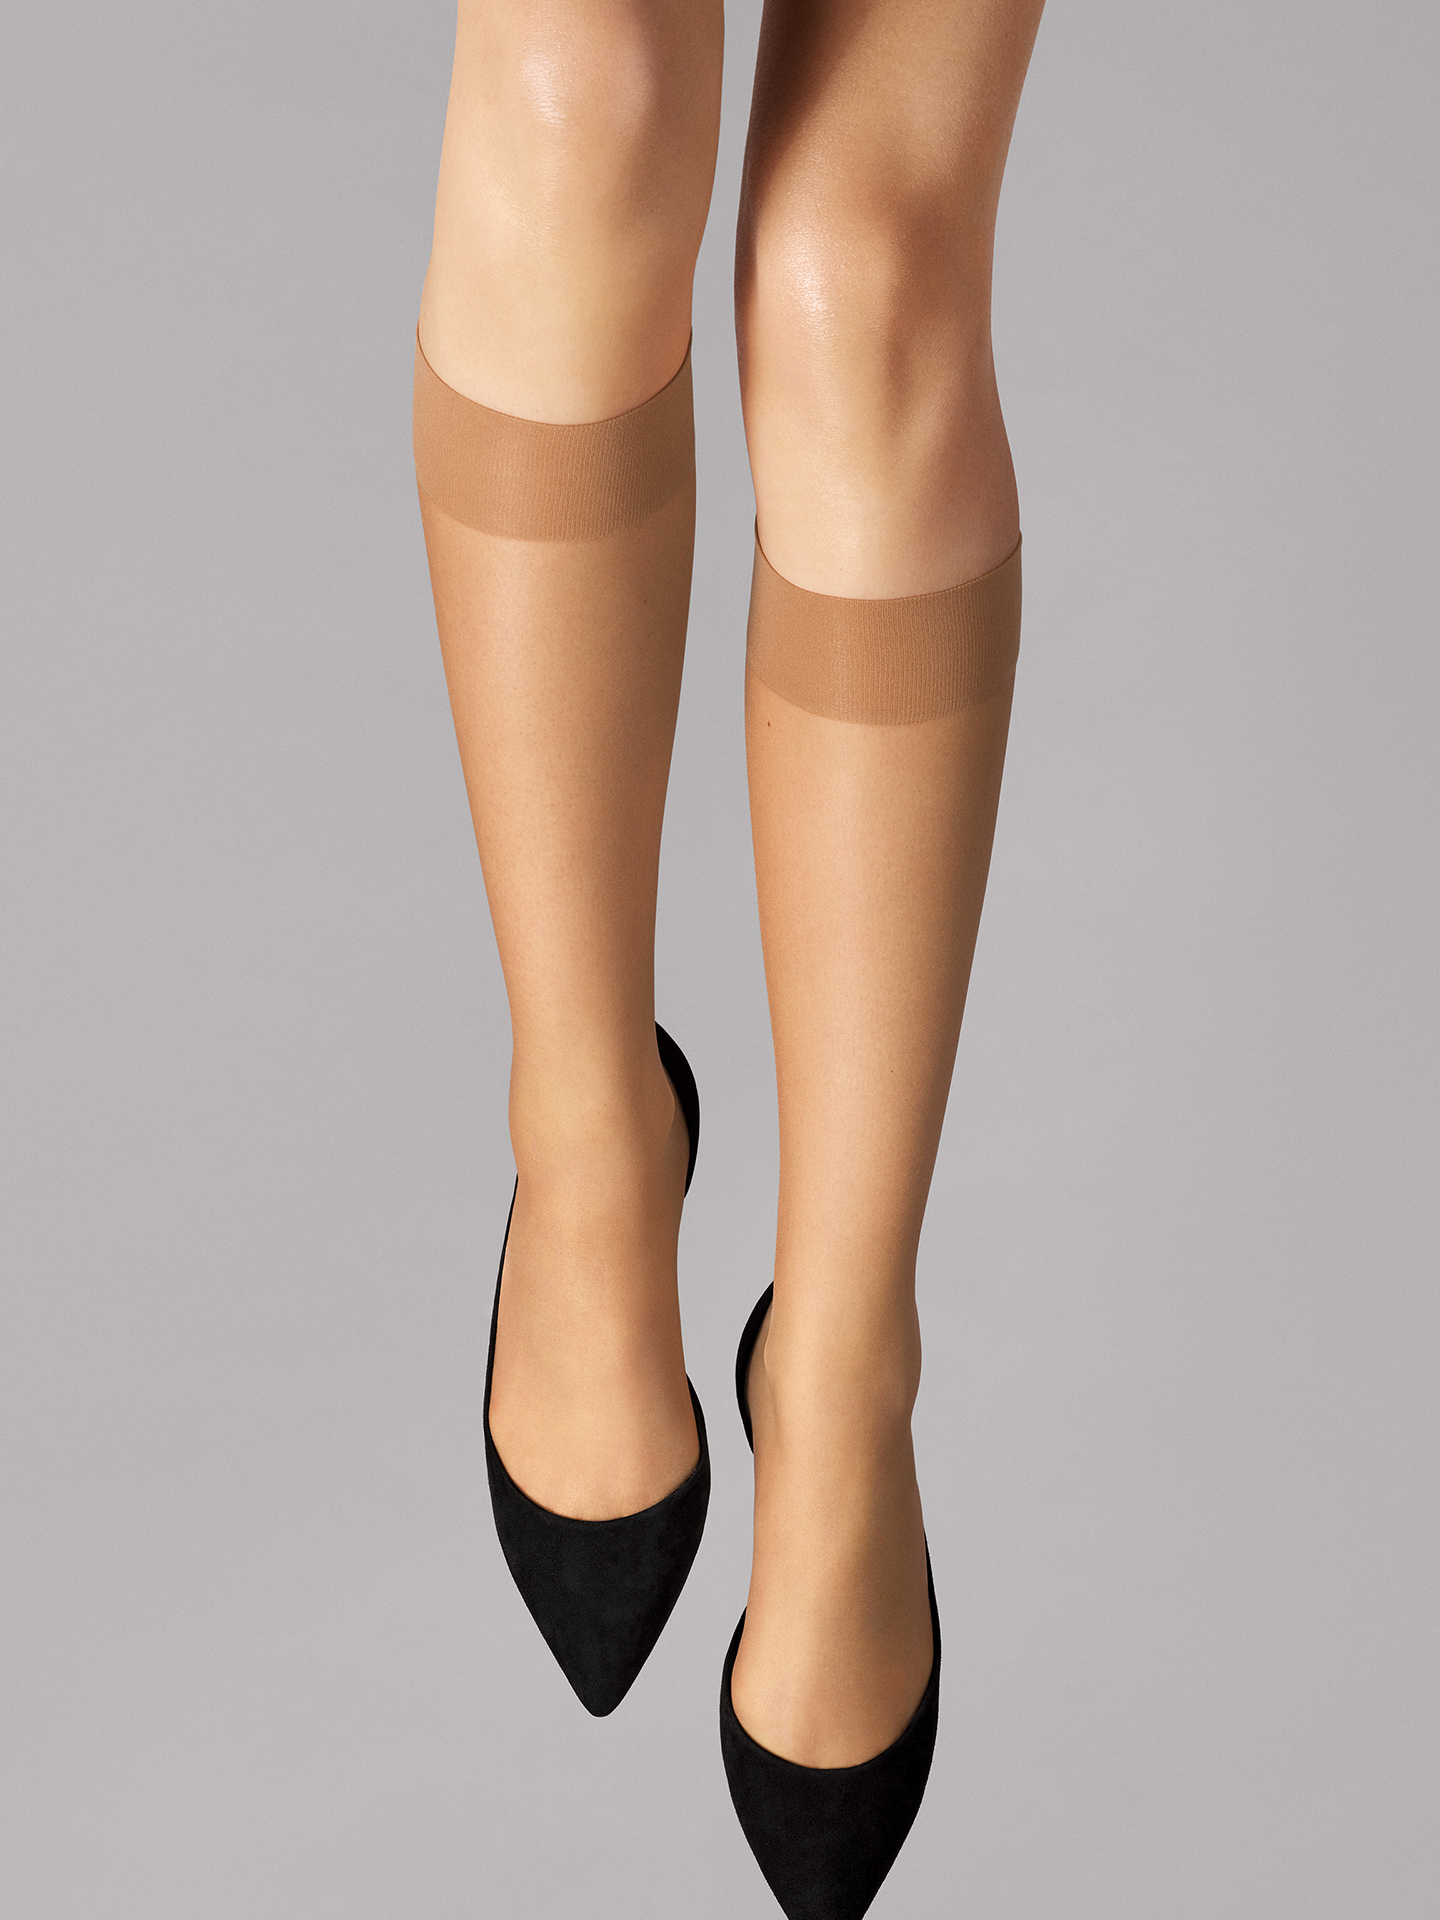 Wolford Apparel & Accessories > Clothing > Gambaletti Nude 8 Knee-Highs - 4060 - M